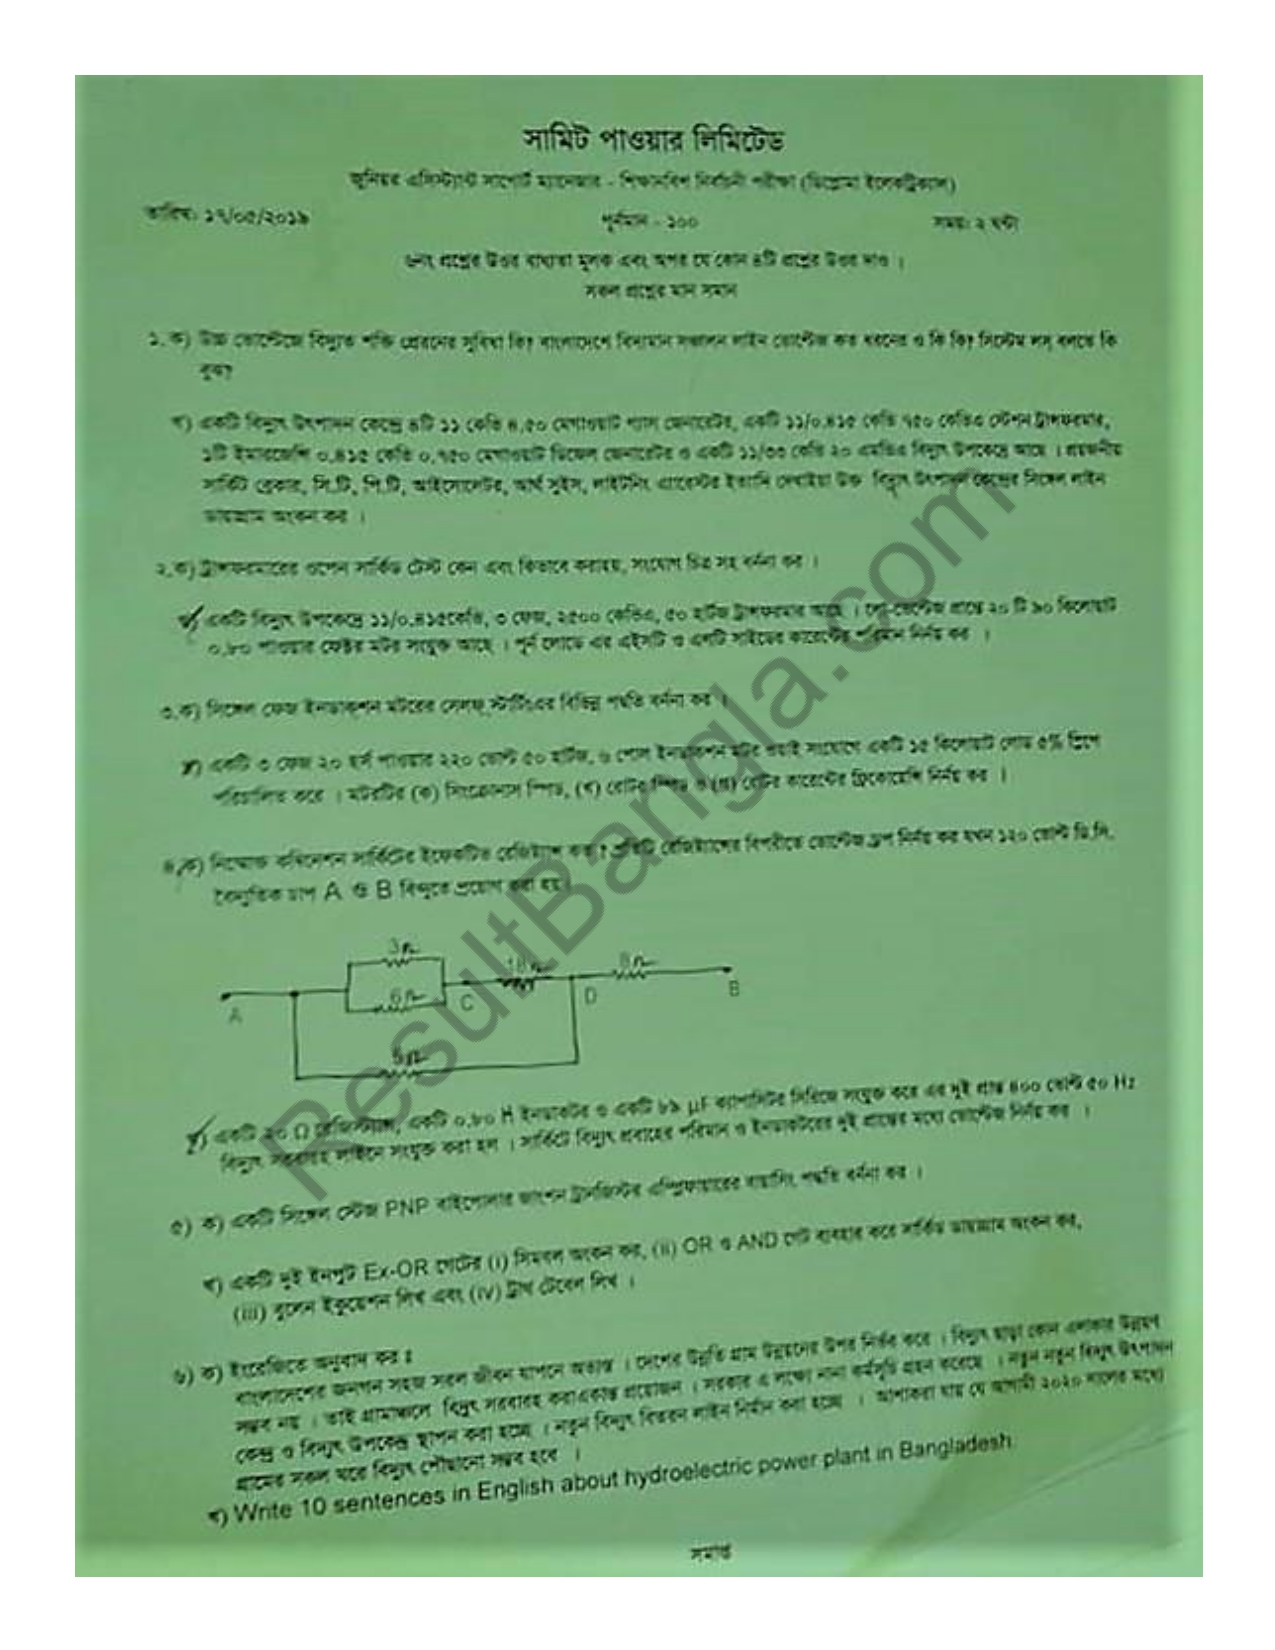 Summit Power Electrical Exam Question 2019